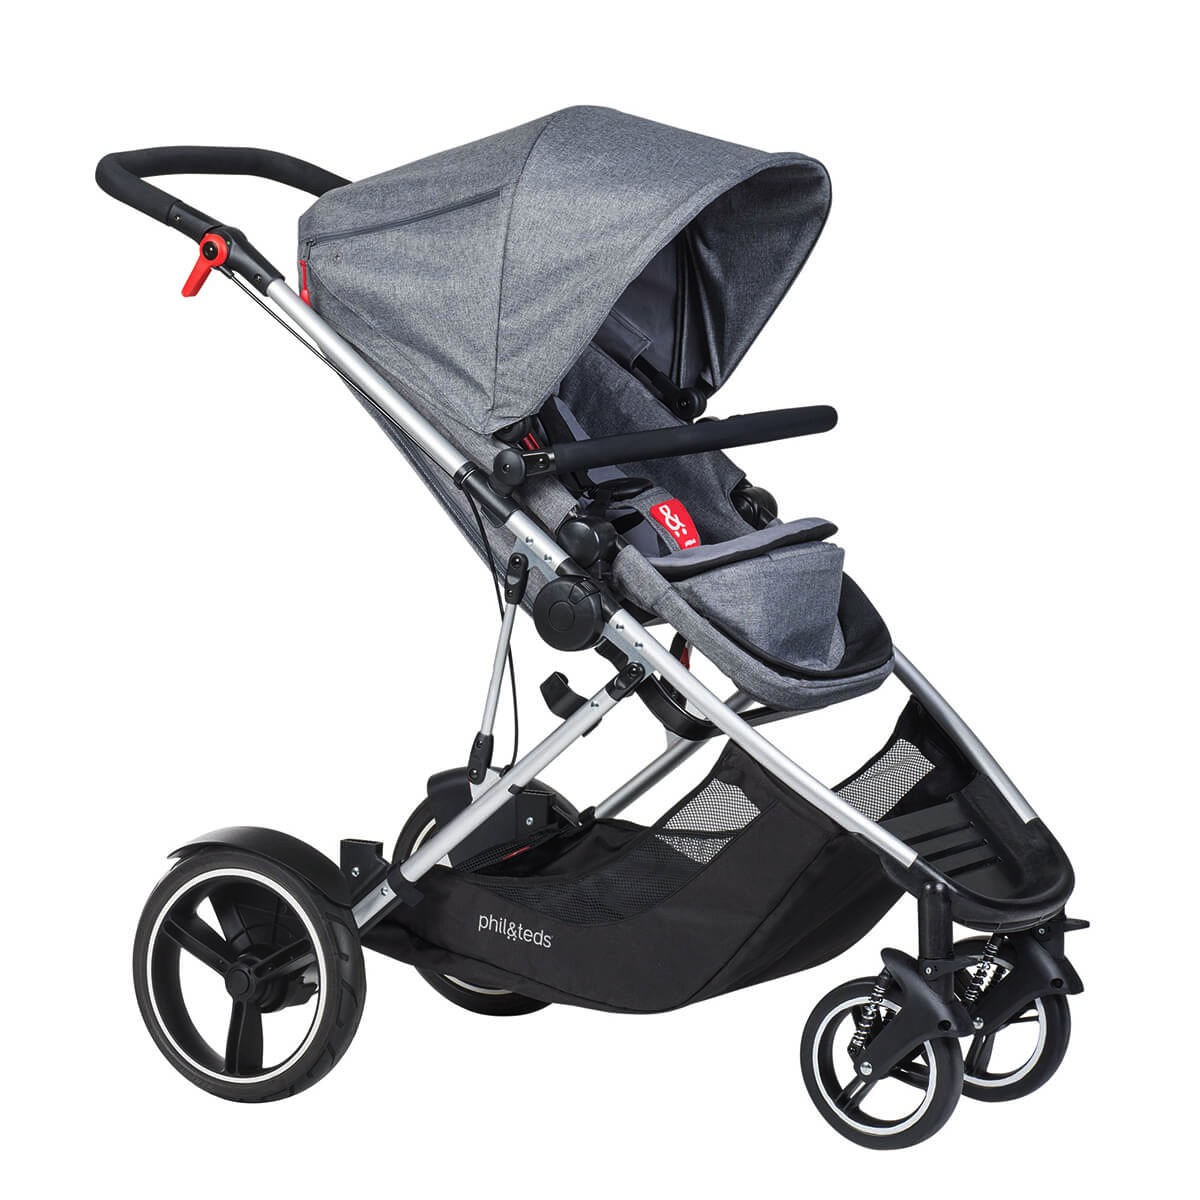 b0987f10ba7 ... Phil and teds voyager stroller ...